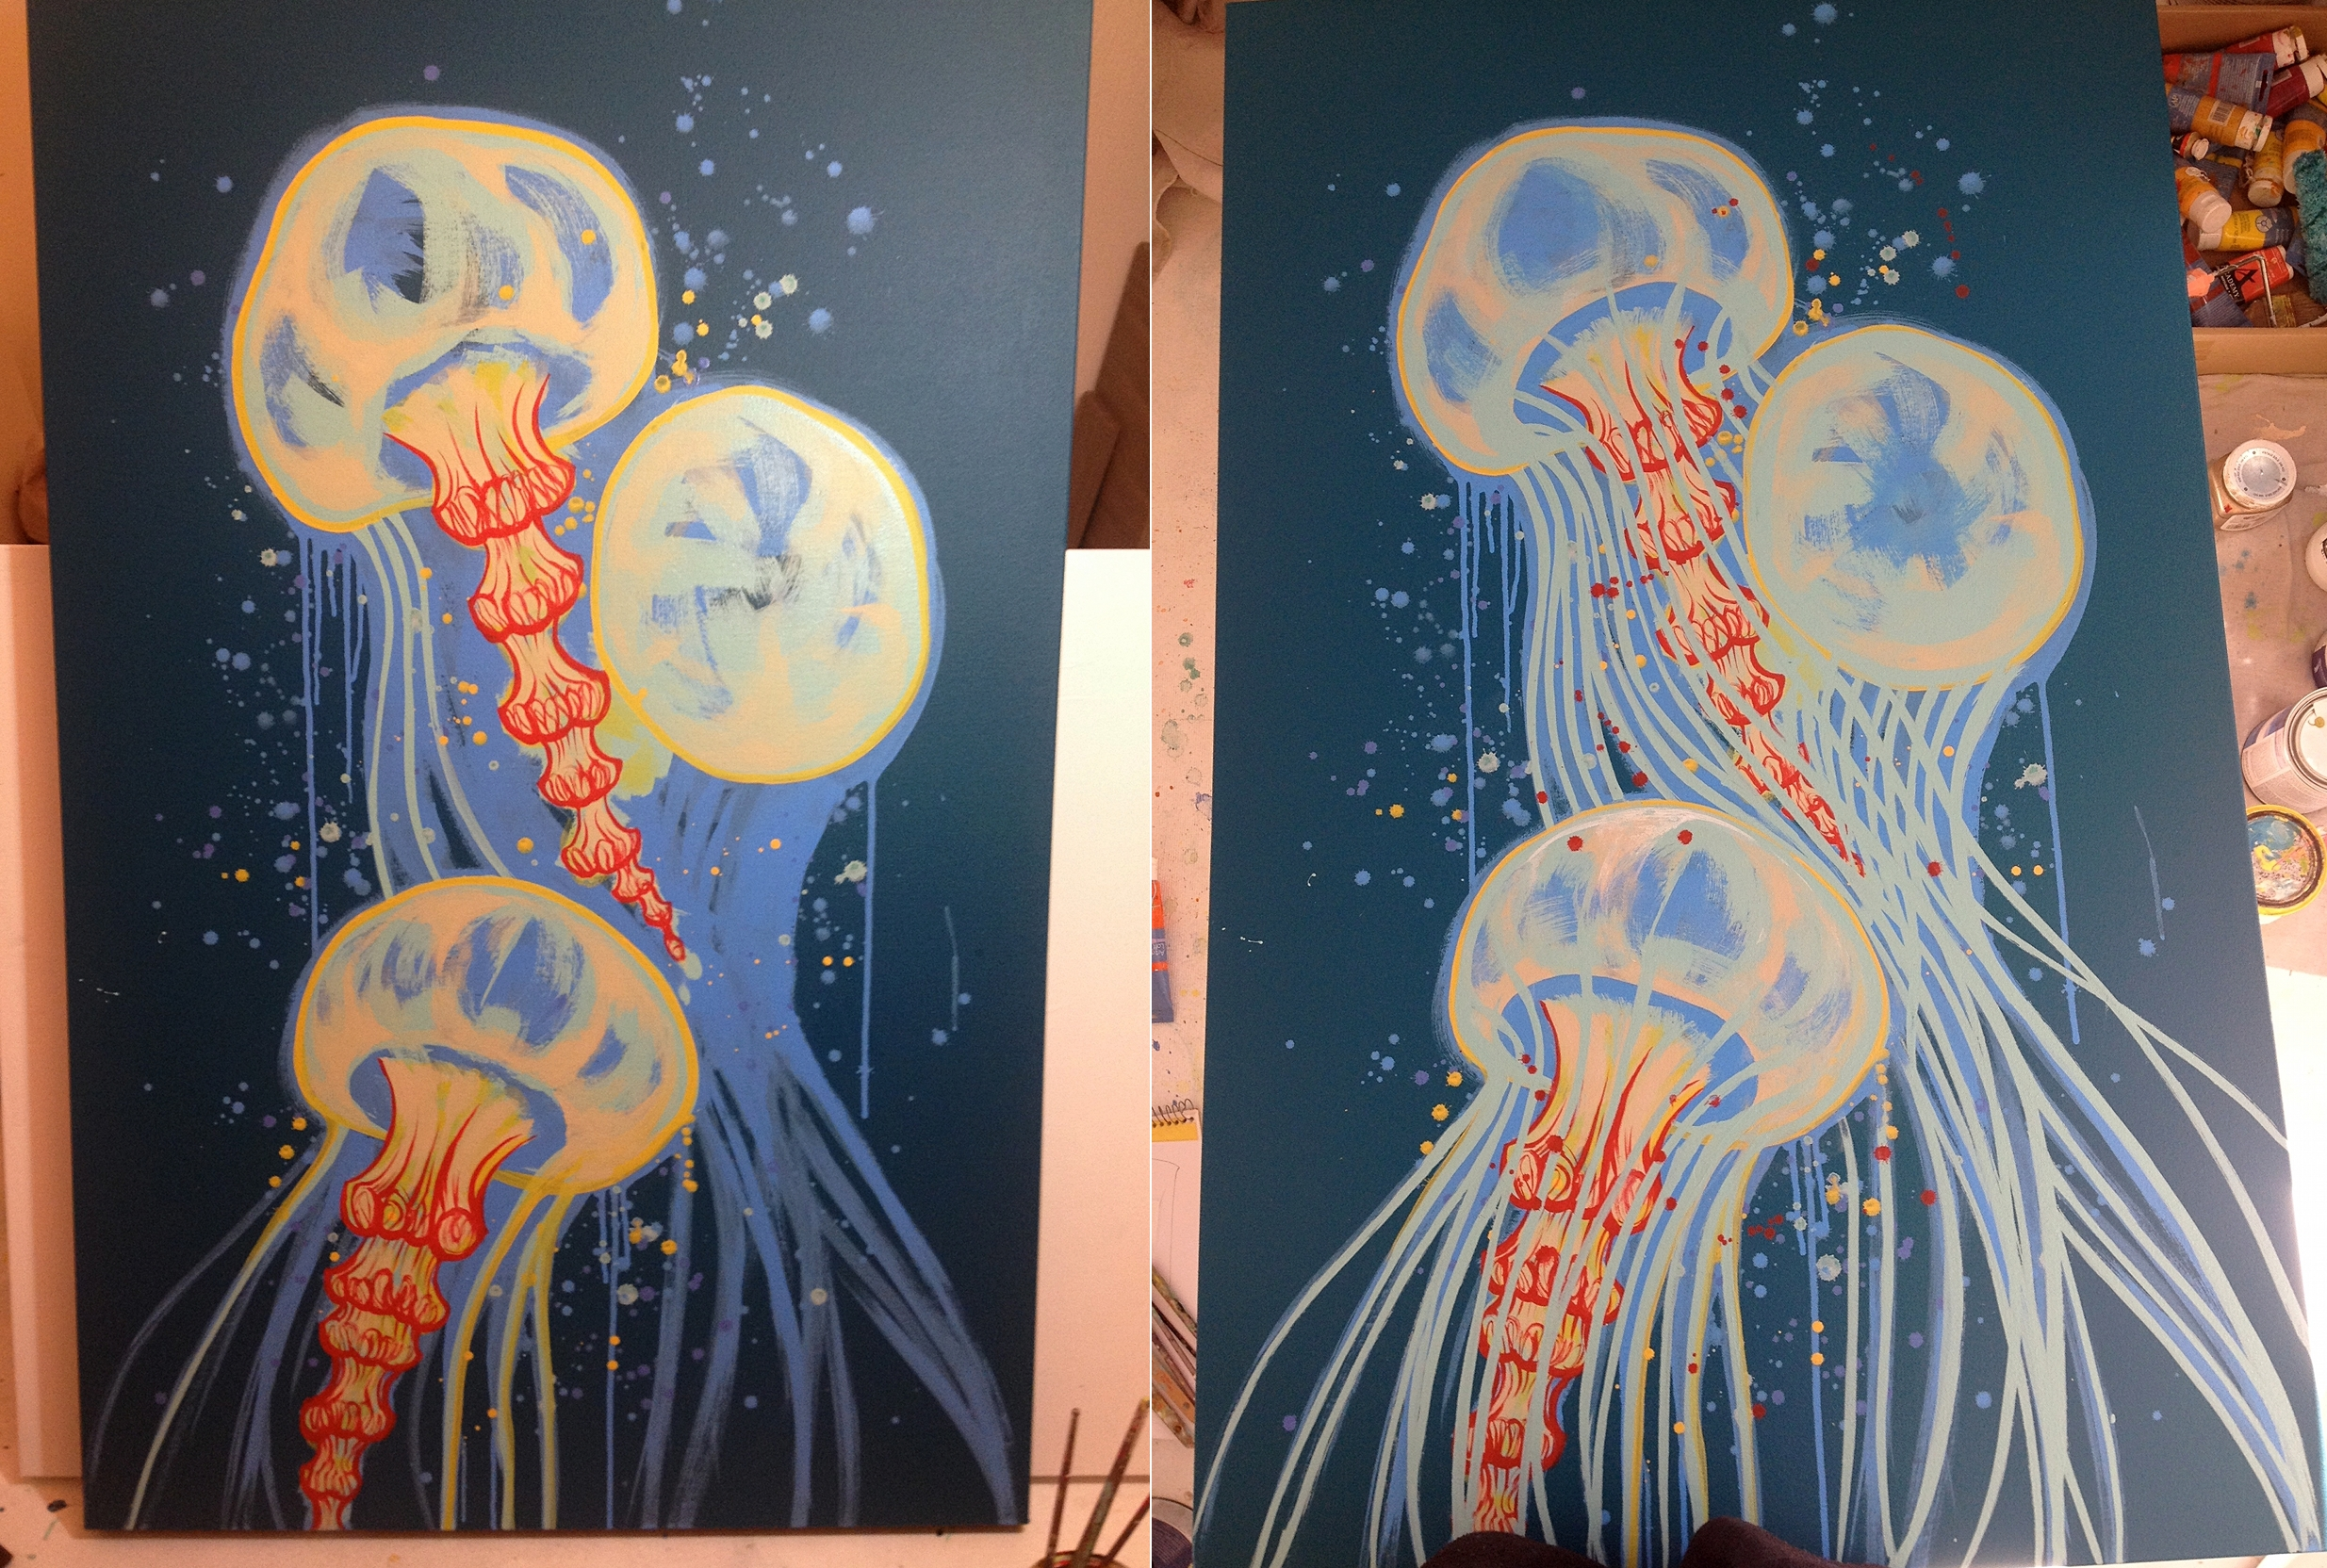 Added red and yellow for more contrast, and more paint splats.